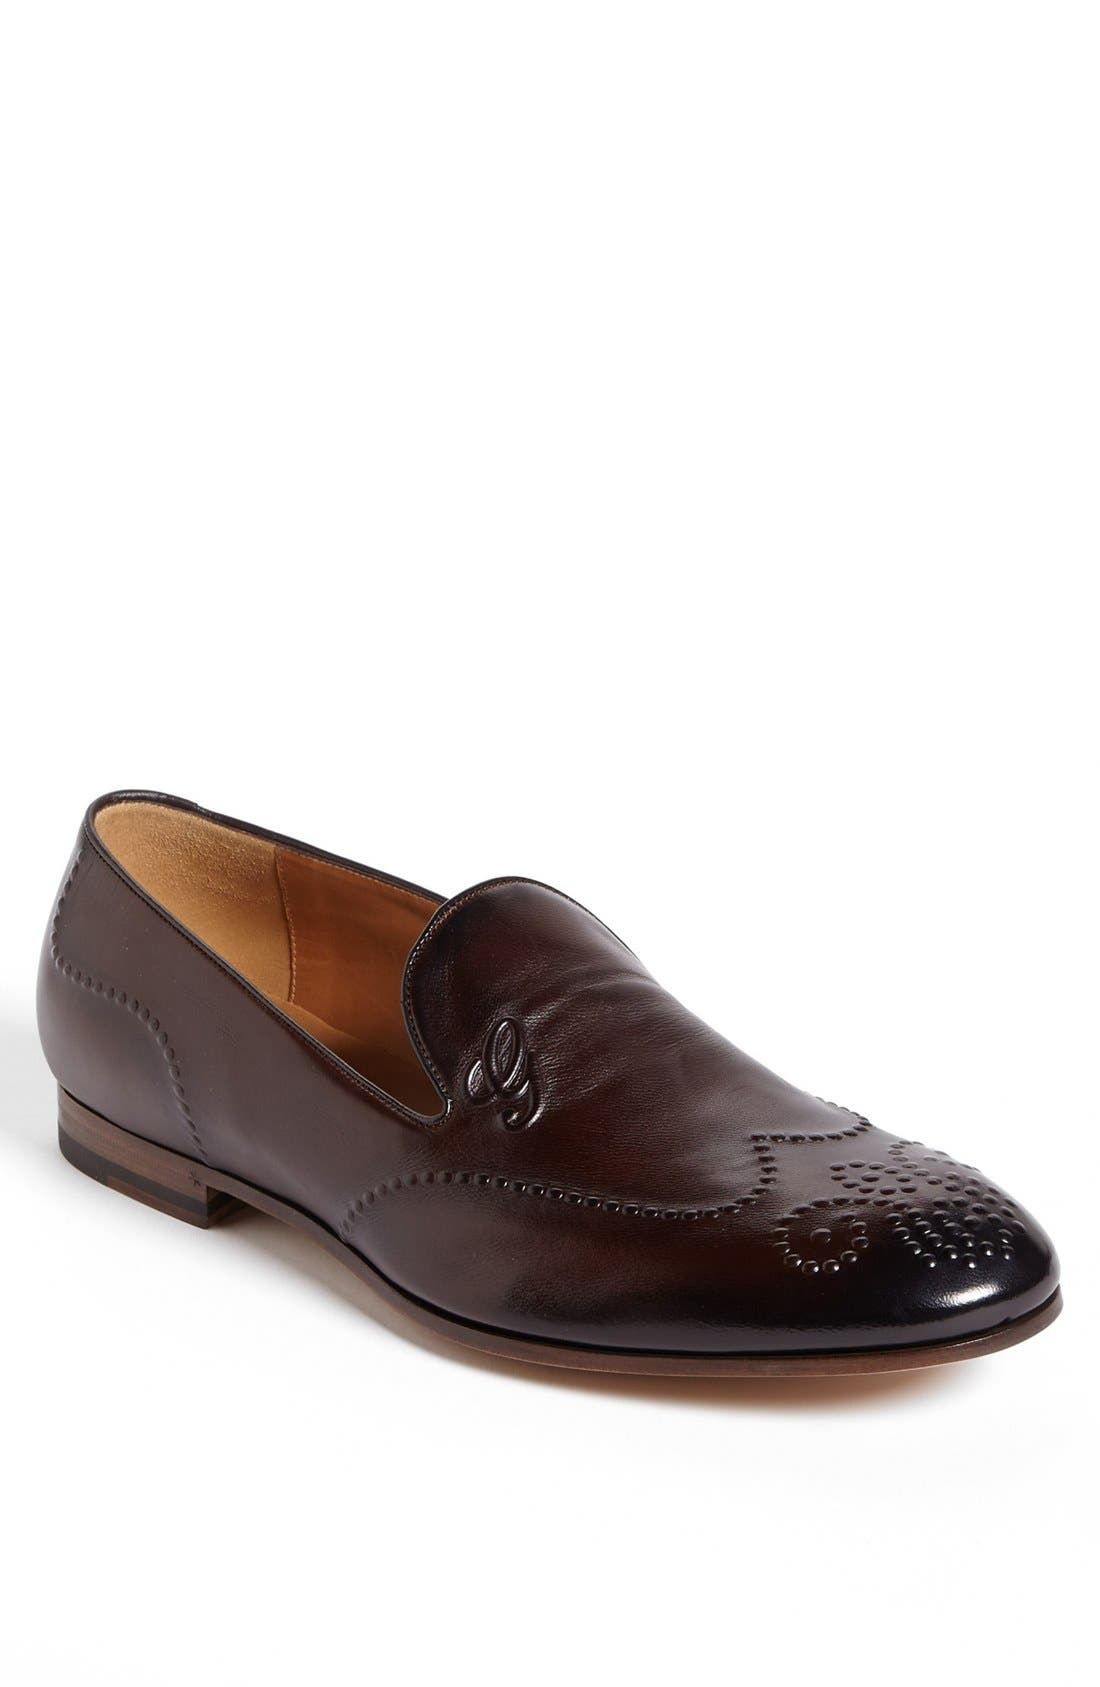 Alternate Image 1 Selected - Gucci 'Beren' Loafer